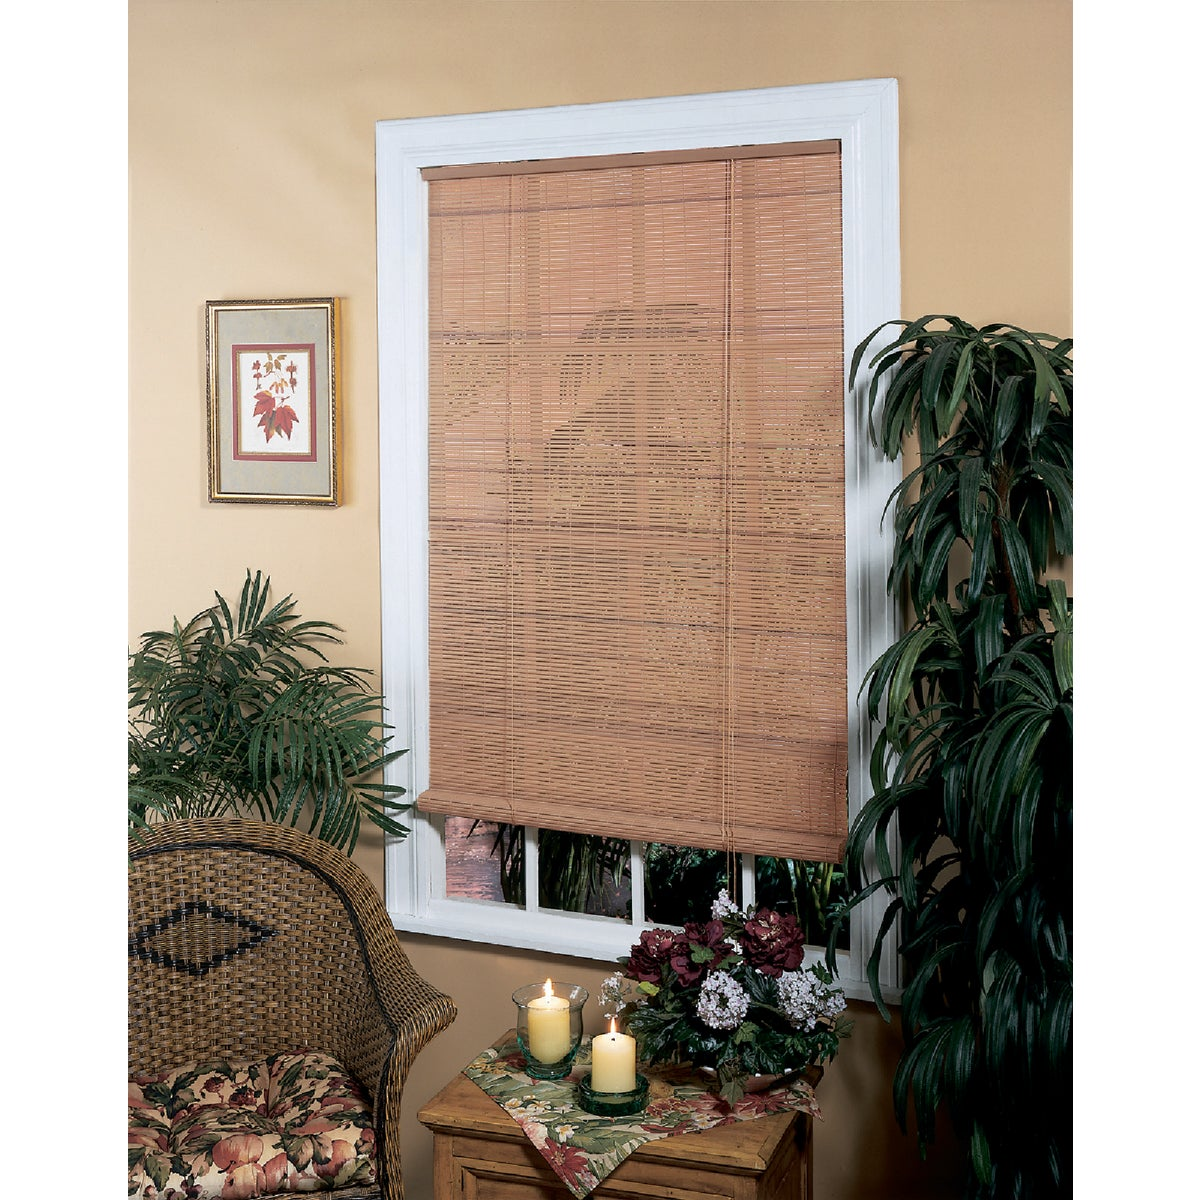 72X72 WDGN ROLL-UP BLIND - 0321266 by Lewis Hyman